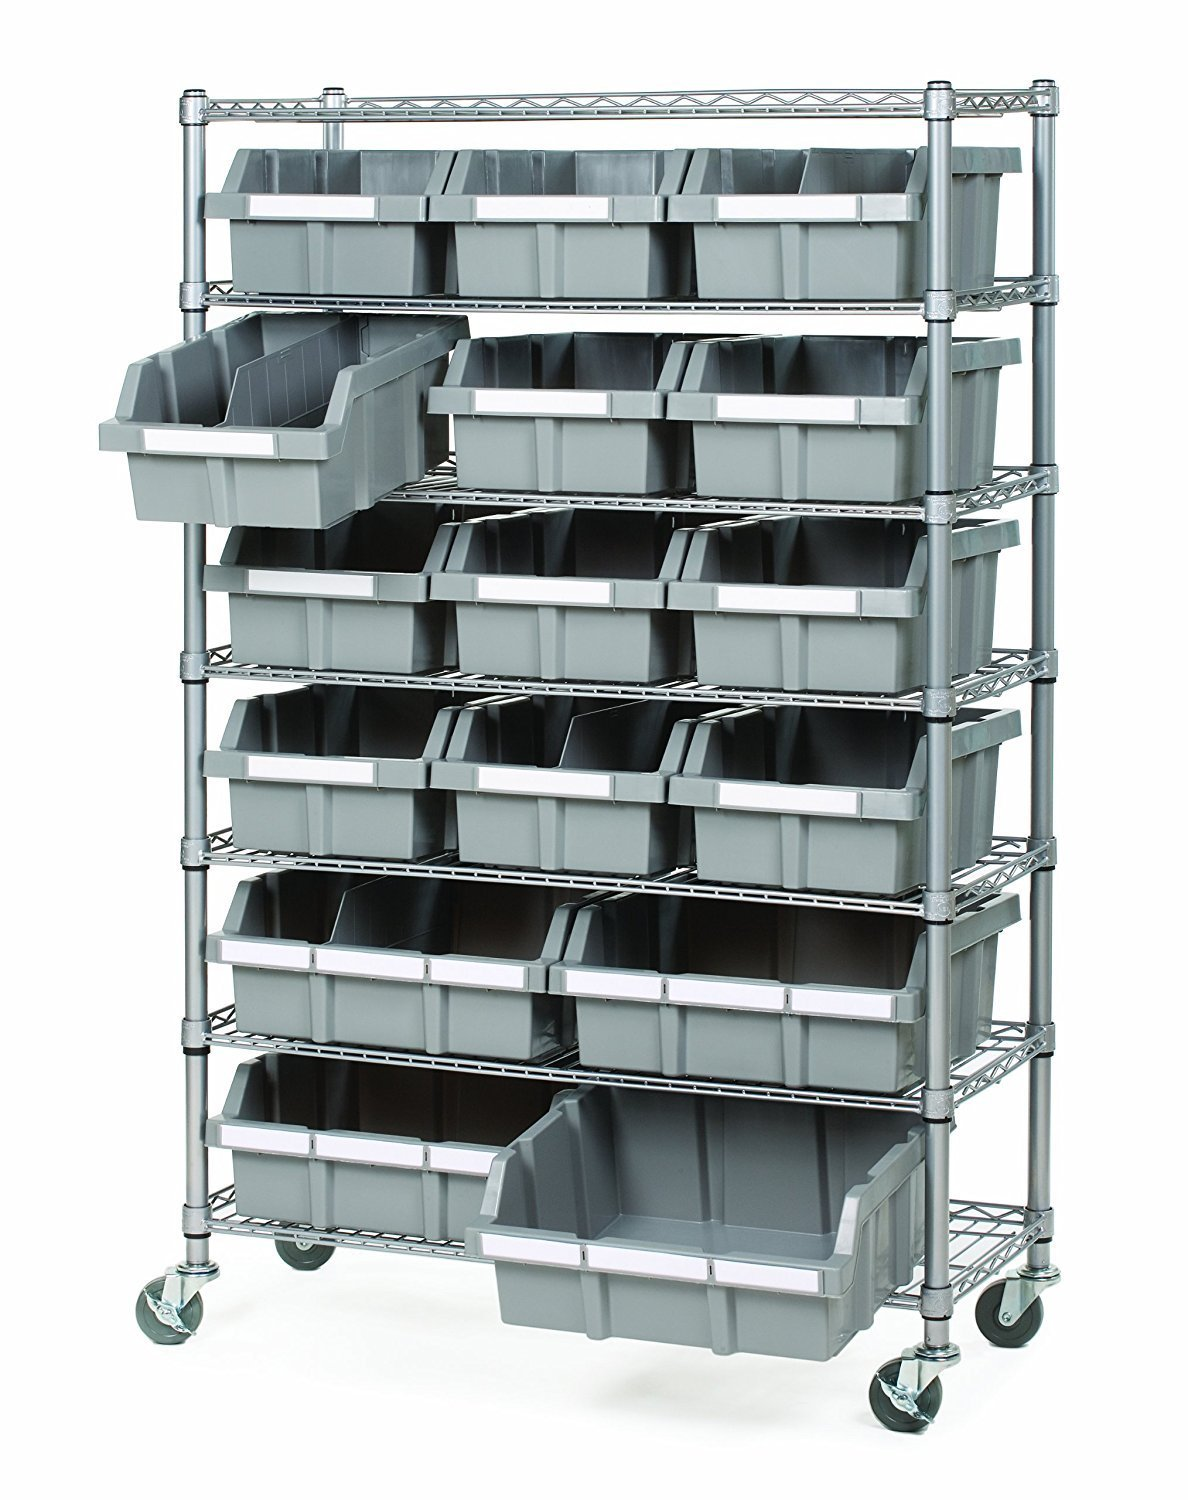 Seville Classics 7 Shelf Commercial Bin Rack System